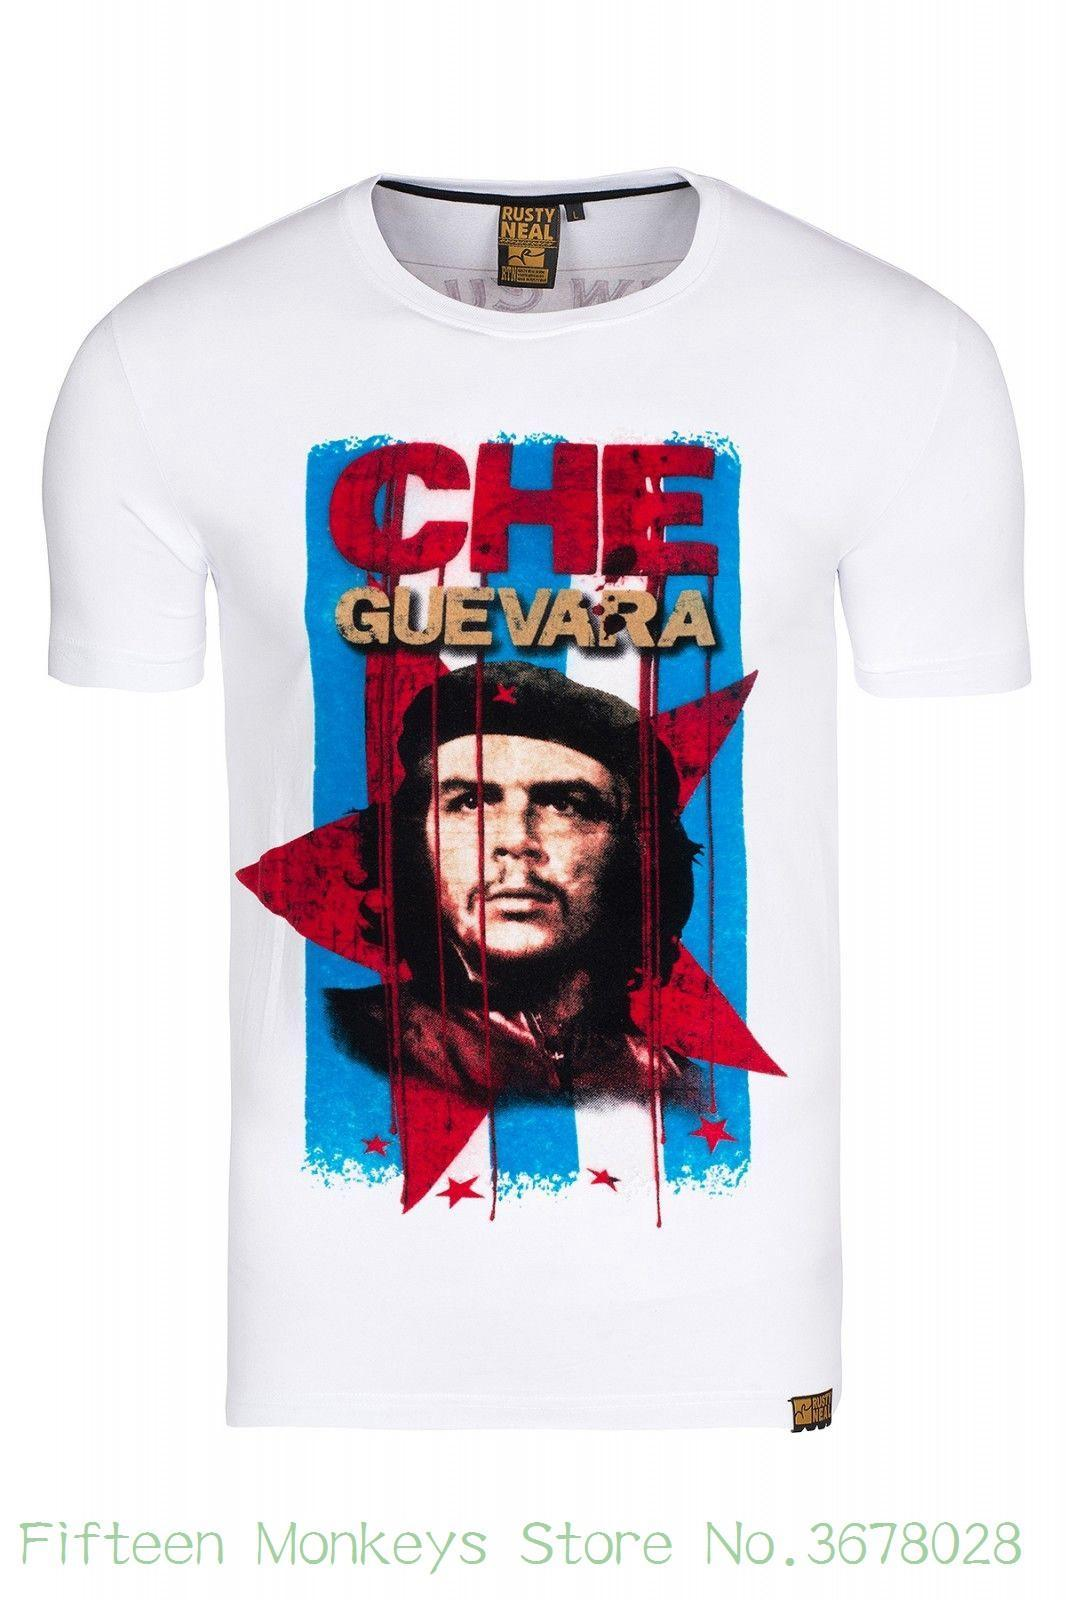 7f5f5486d Men O neck Tee Shirt Che Guevara T-shirt Slim Fit Men's Shirt Crew Neck  White Rusty Neal Sale